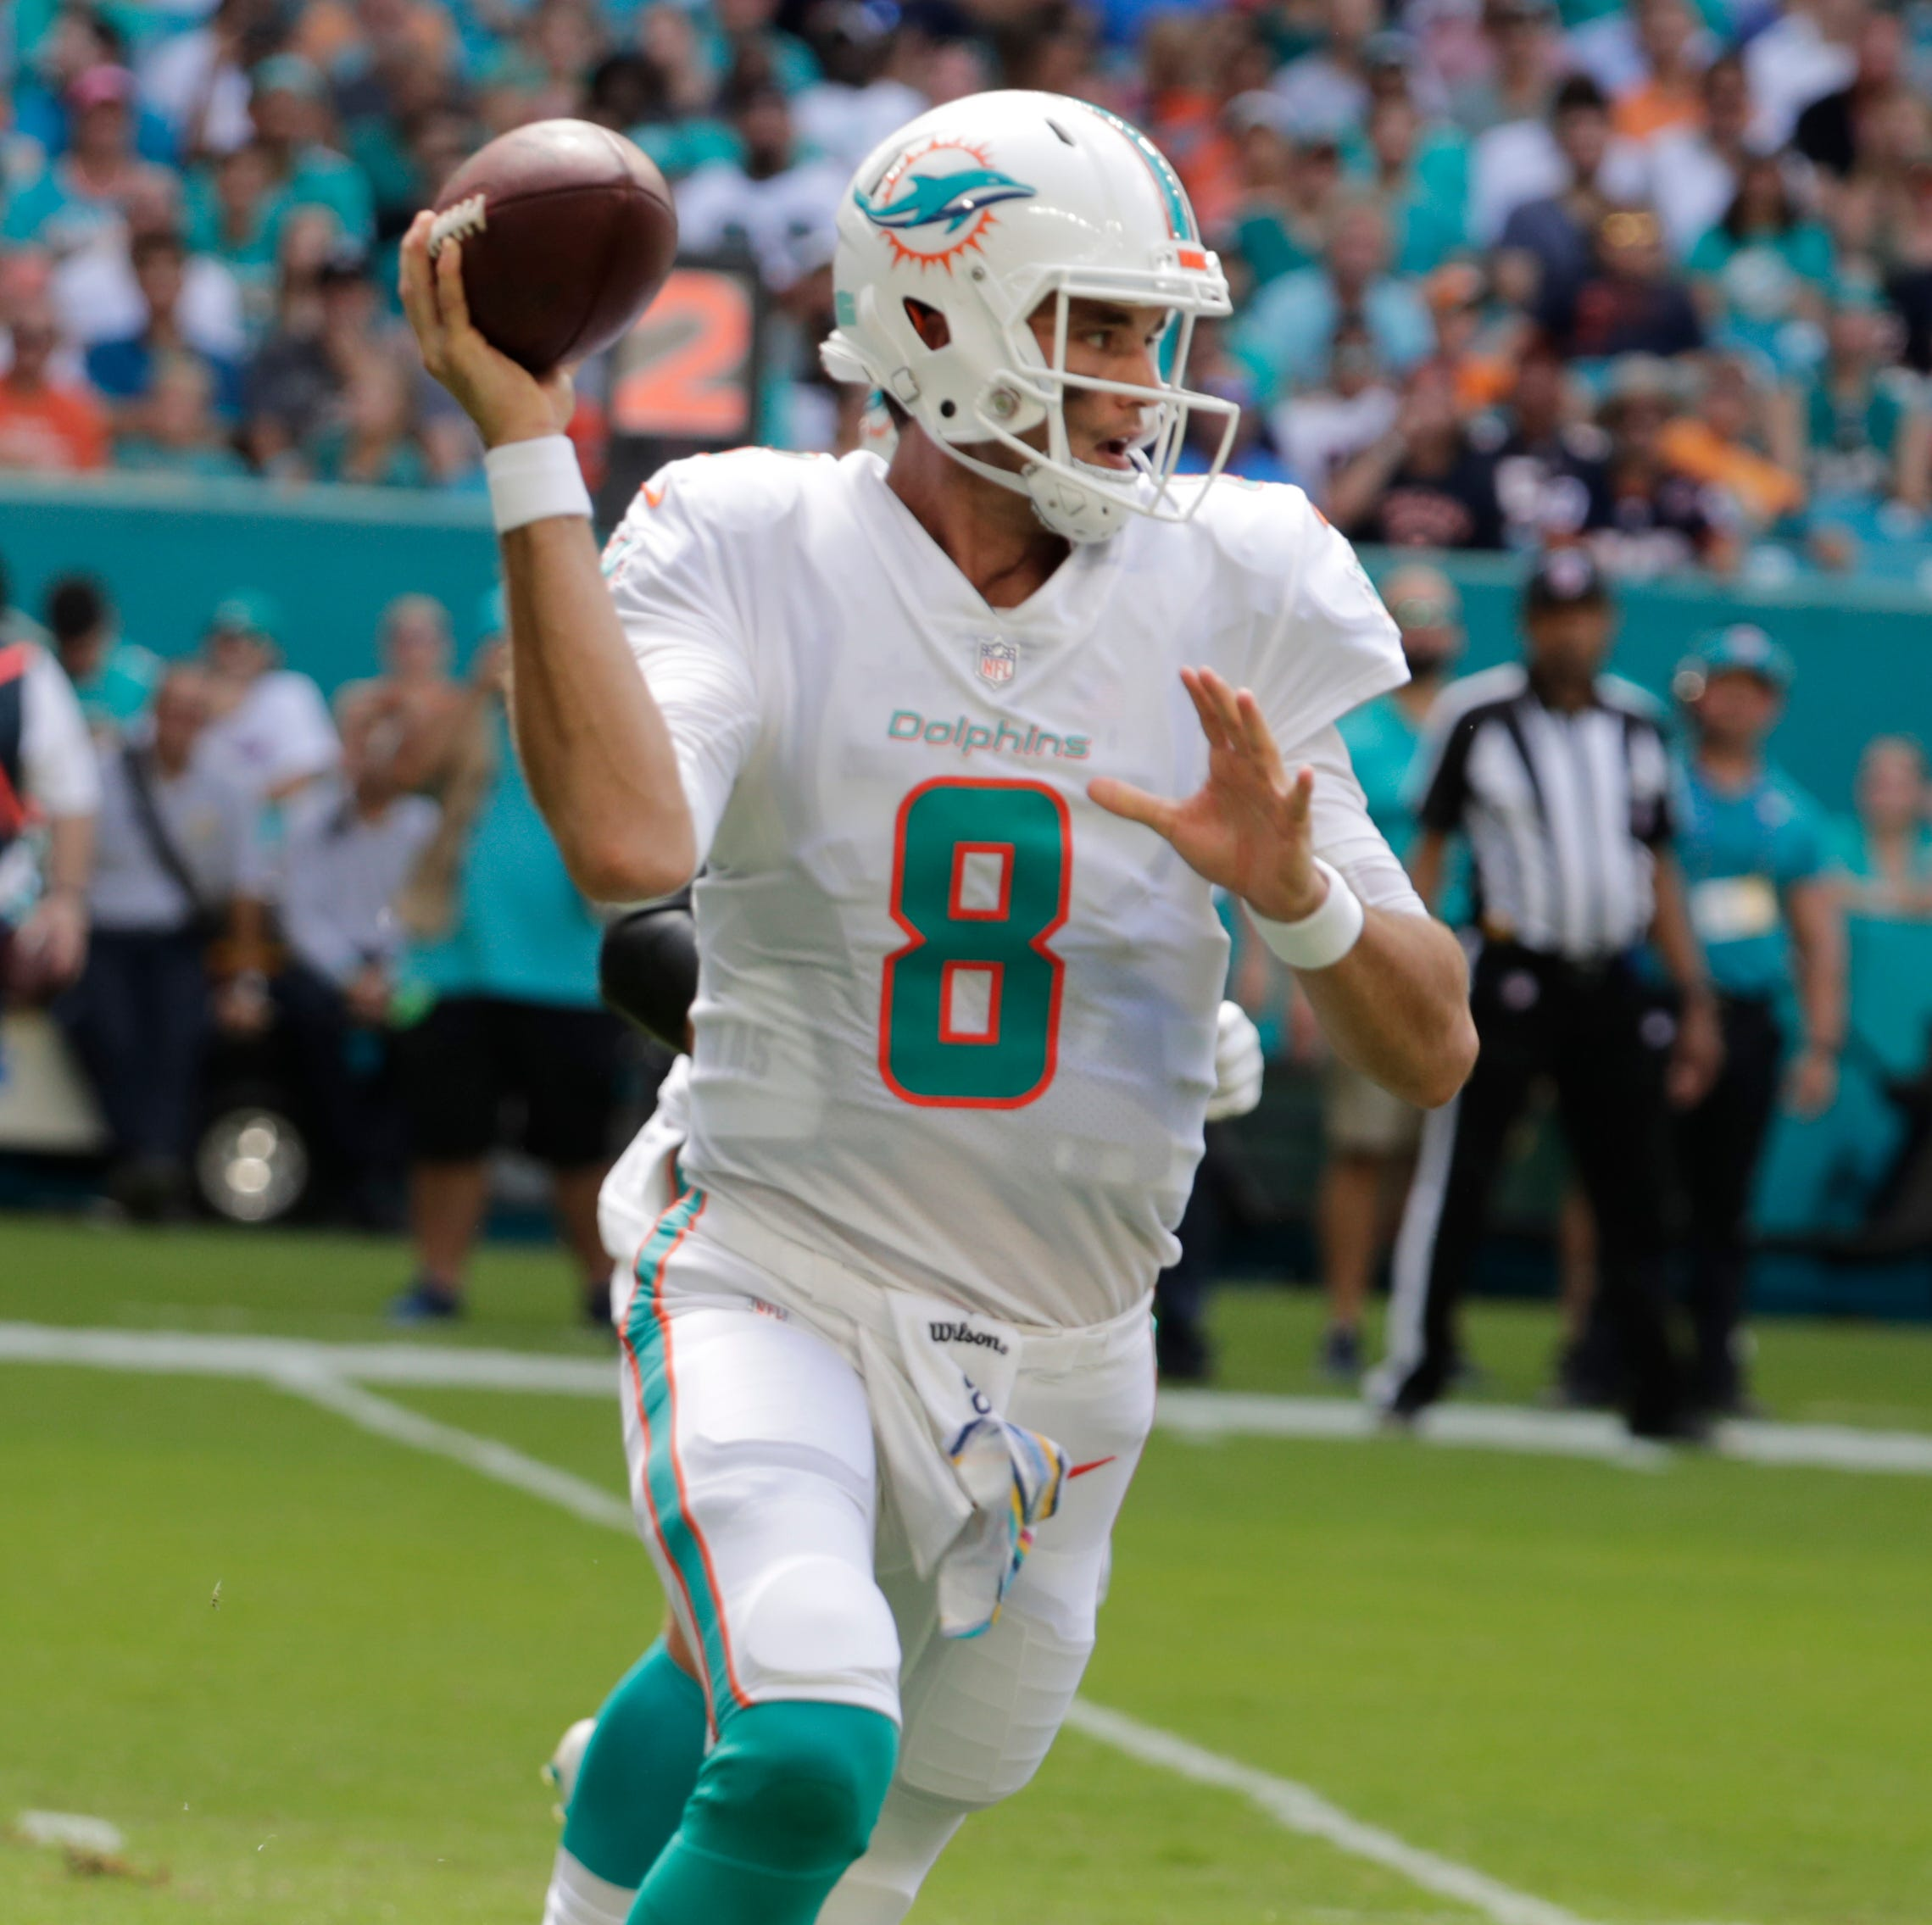 Detroit Lions must knock Dolphins QB Brock Osweiler off his 'Cloud 9'